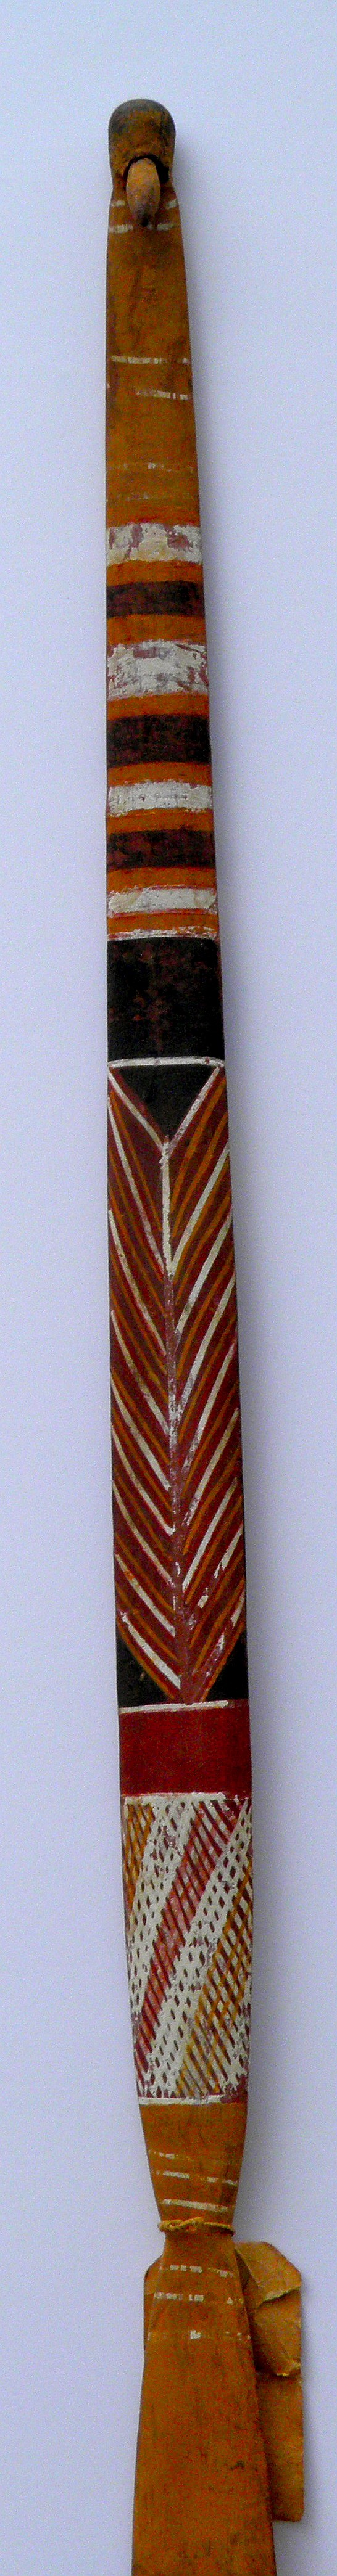 ARNHEM LAND WOOMERA (SPEAR-THROWER), CROSS HATCH AND BANDING